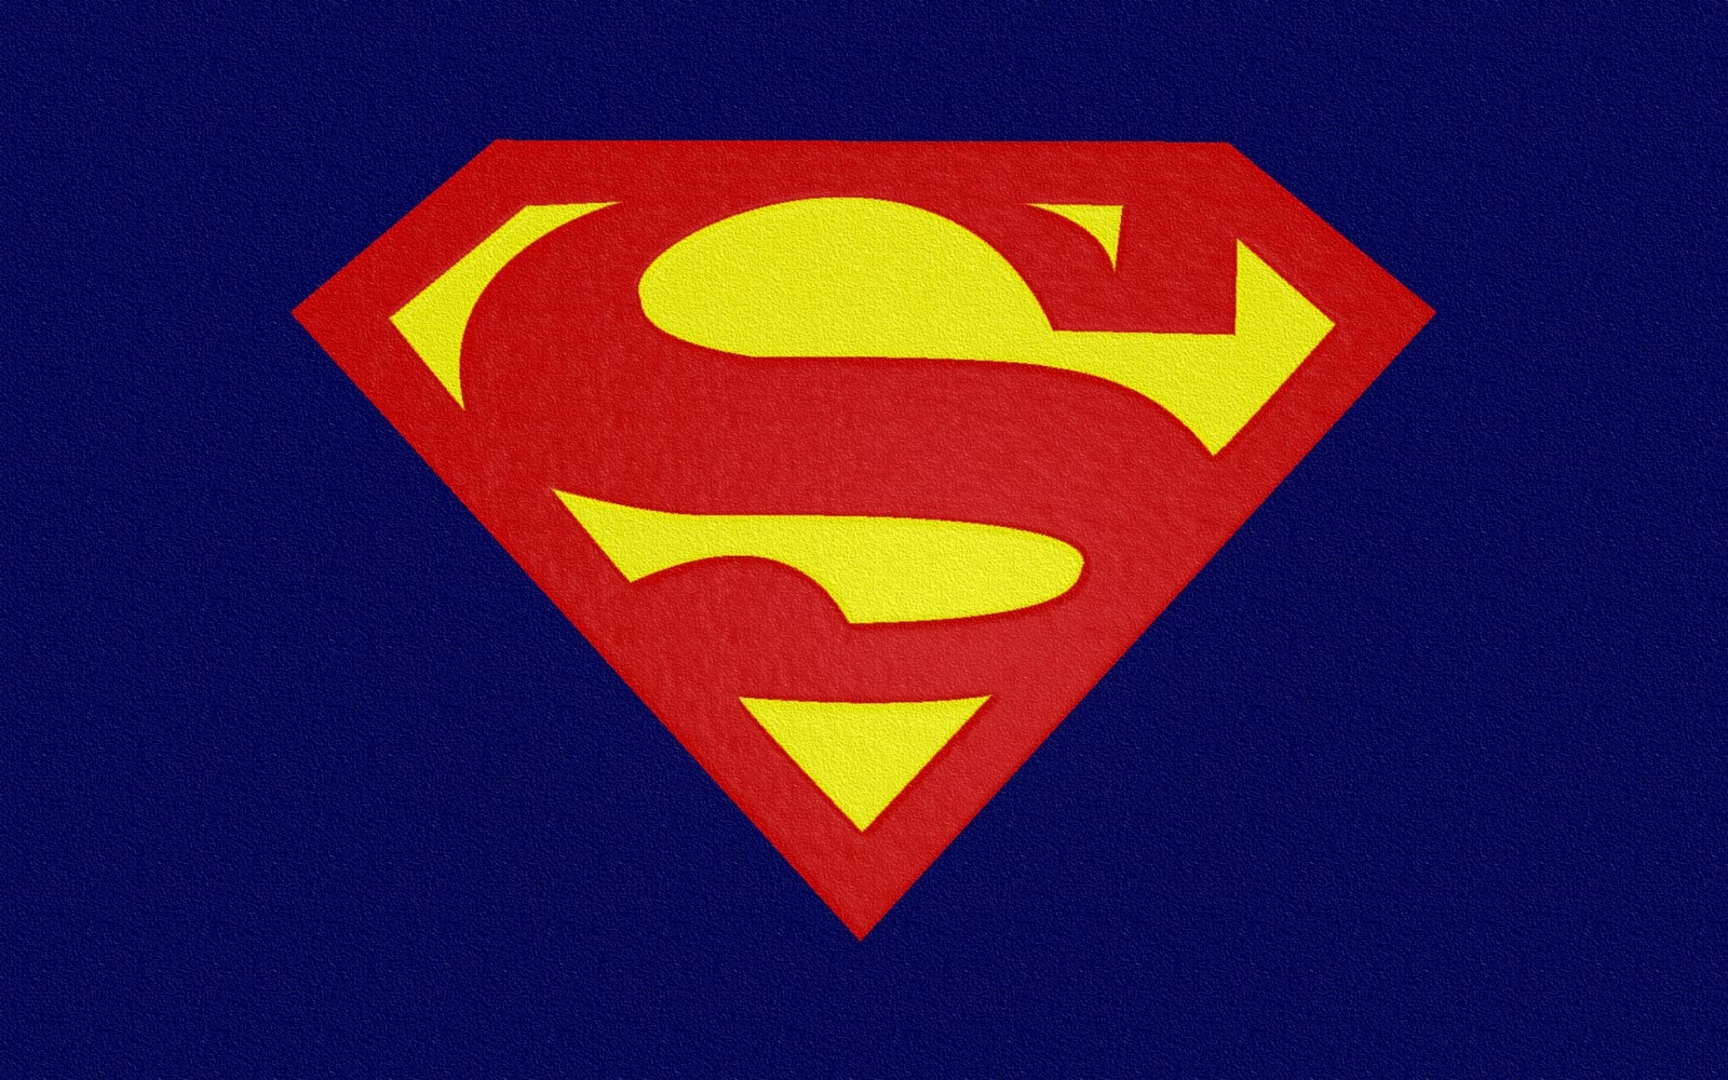 1920x1080 superman logo hd widescreen sky hdjpg 1728x1080